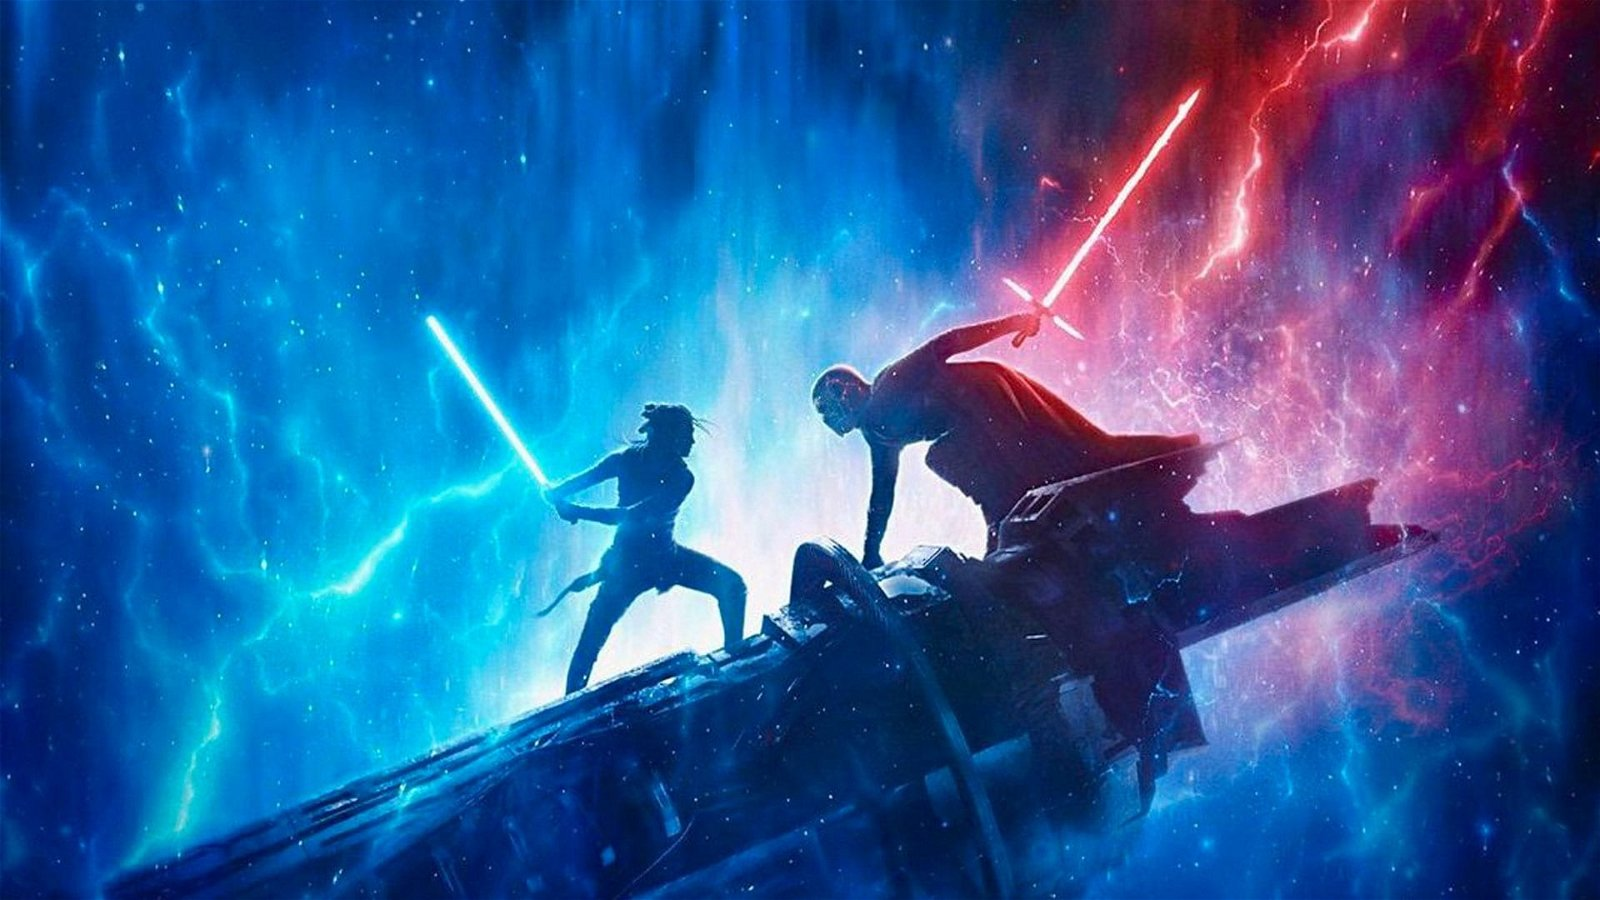 Star Wars: Episode IX - The Rise of Skywalker (2019) Review 2